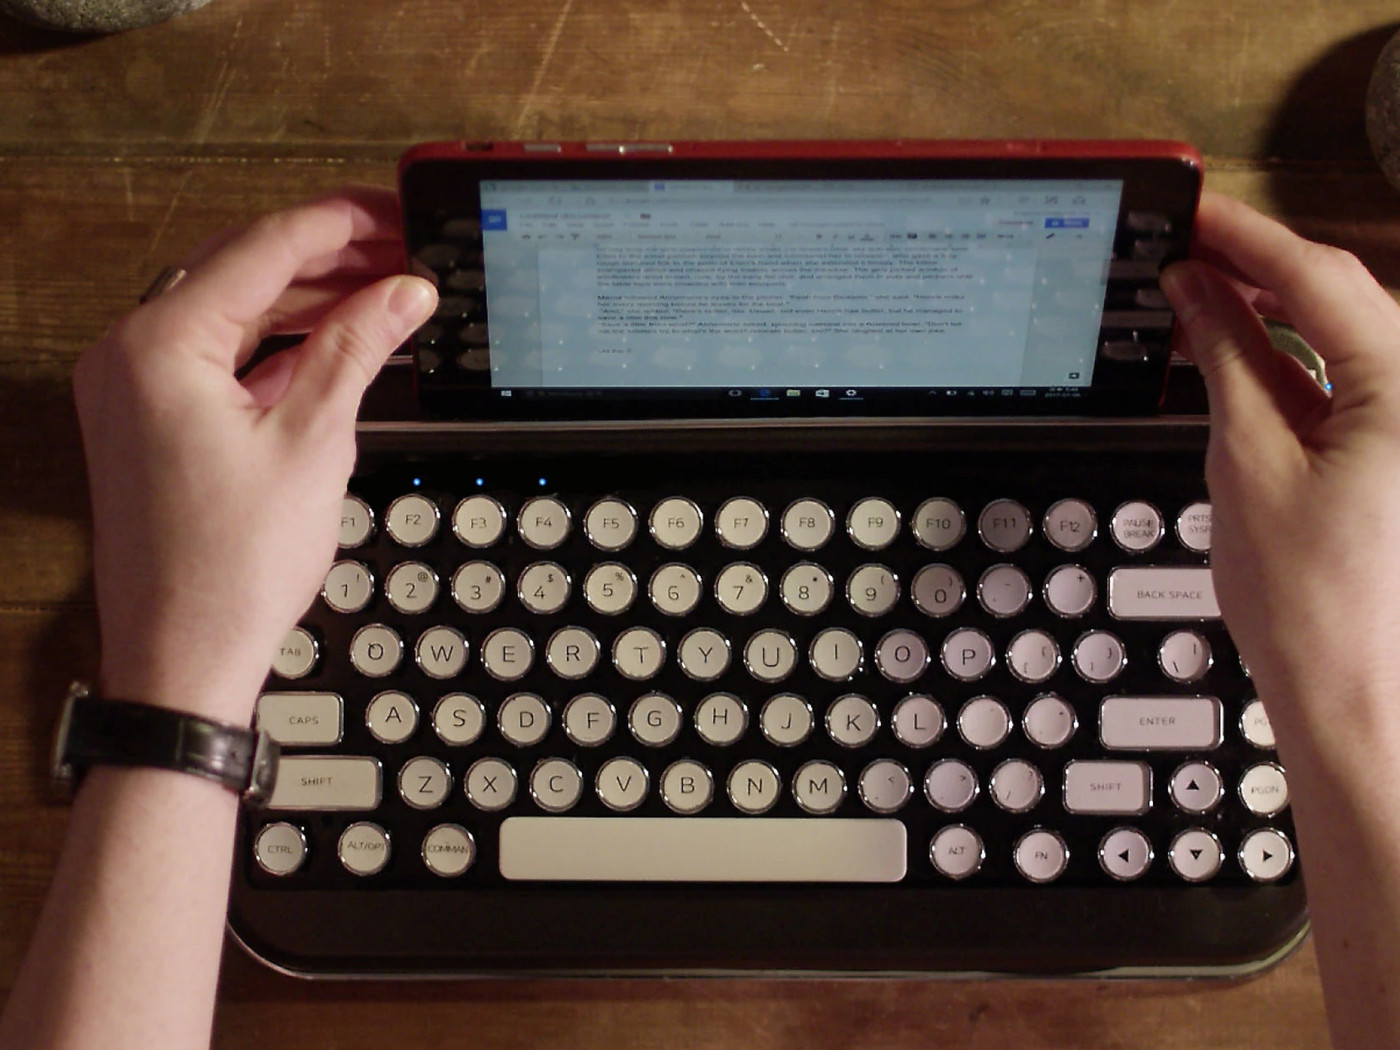 17641a15822 This retro typewriter-style keyboard looks great - The Verge